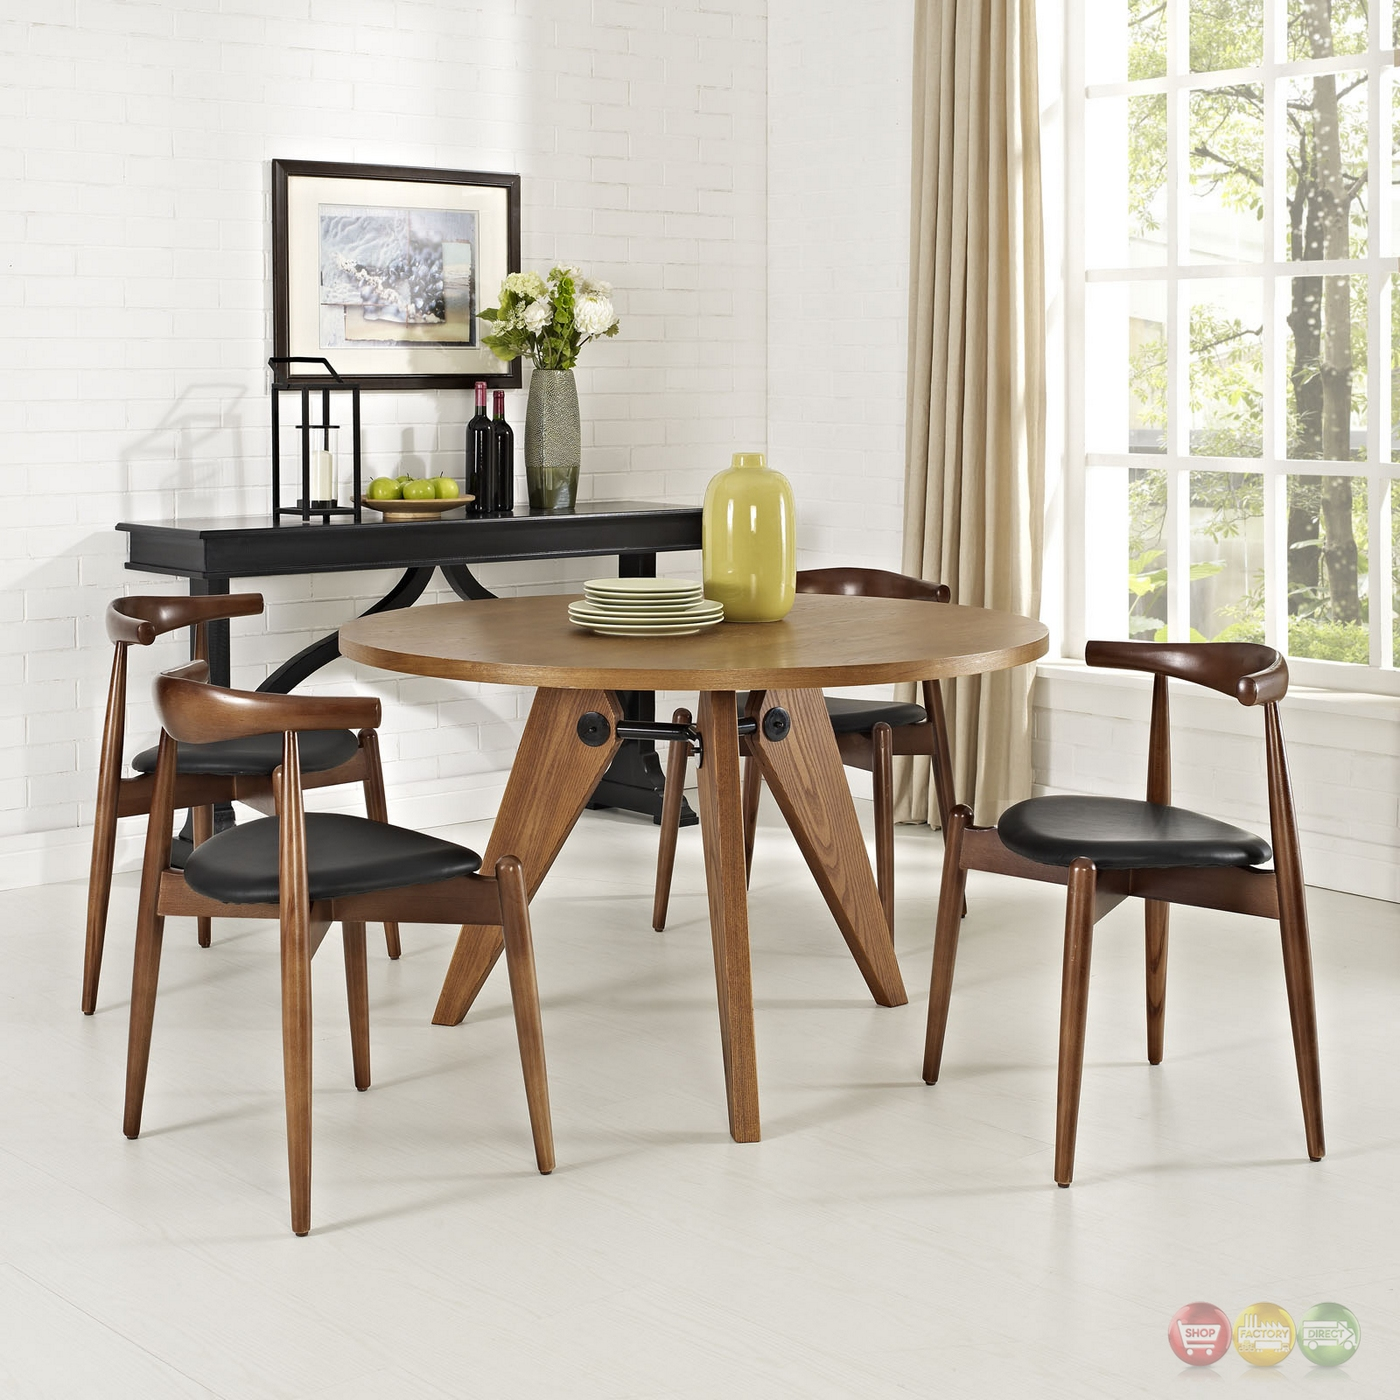 Stalwart Contemporary Wood Dining Table Set W Upholstered